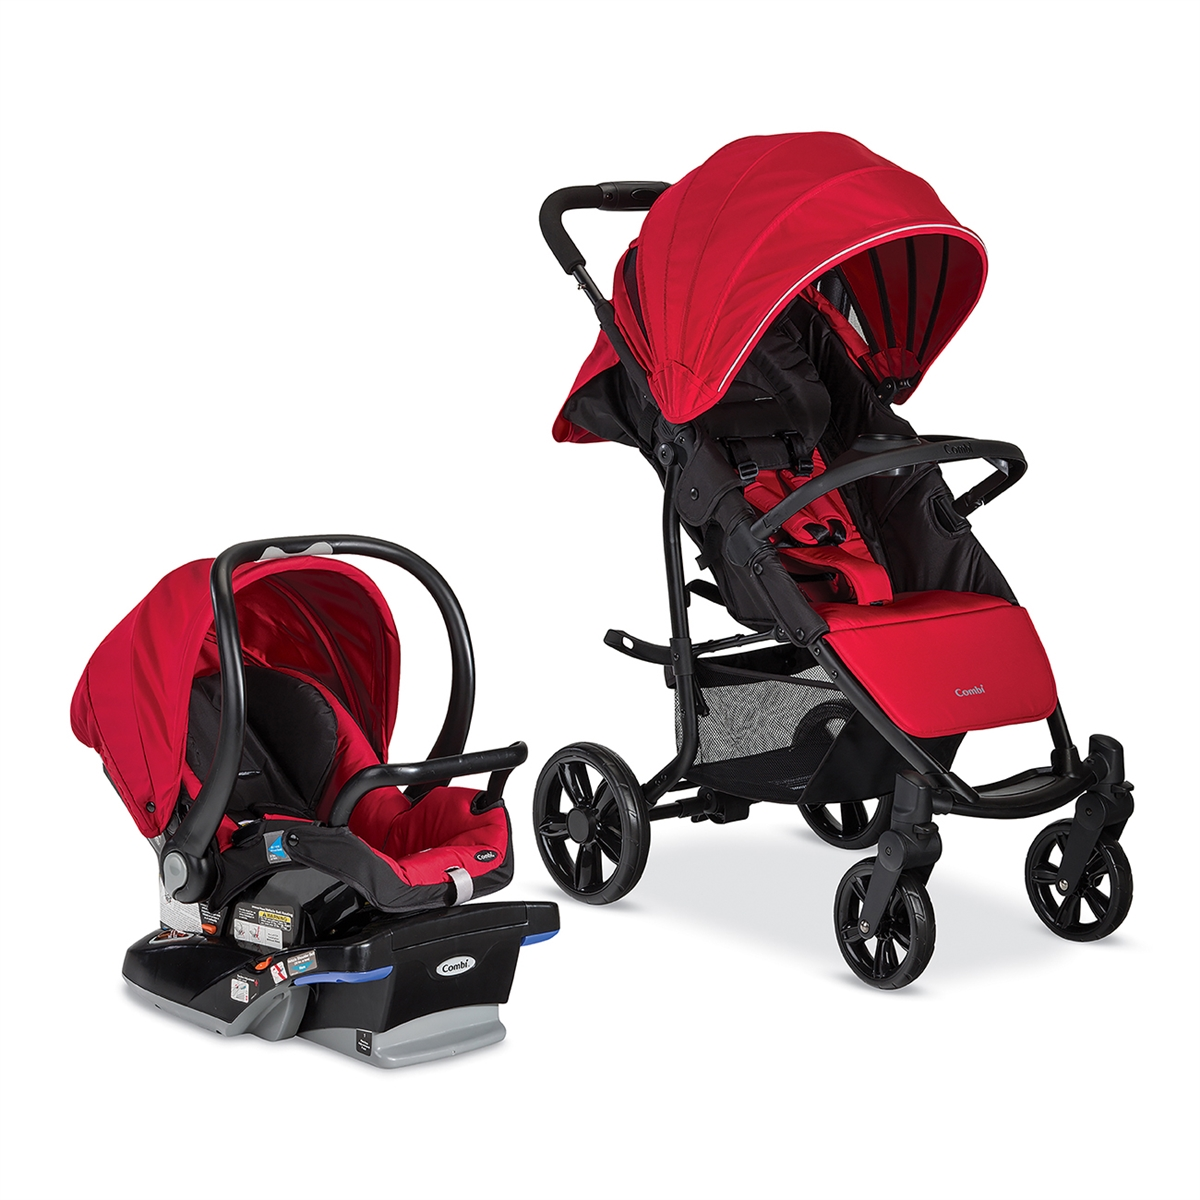 Travel System With Convertible Car Seat Shuttle Travel System